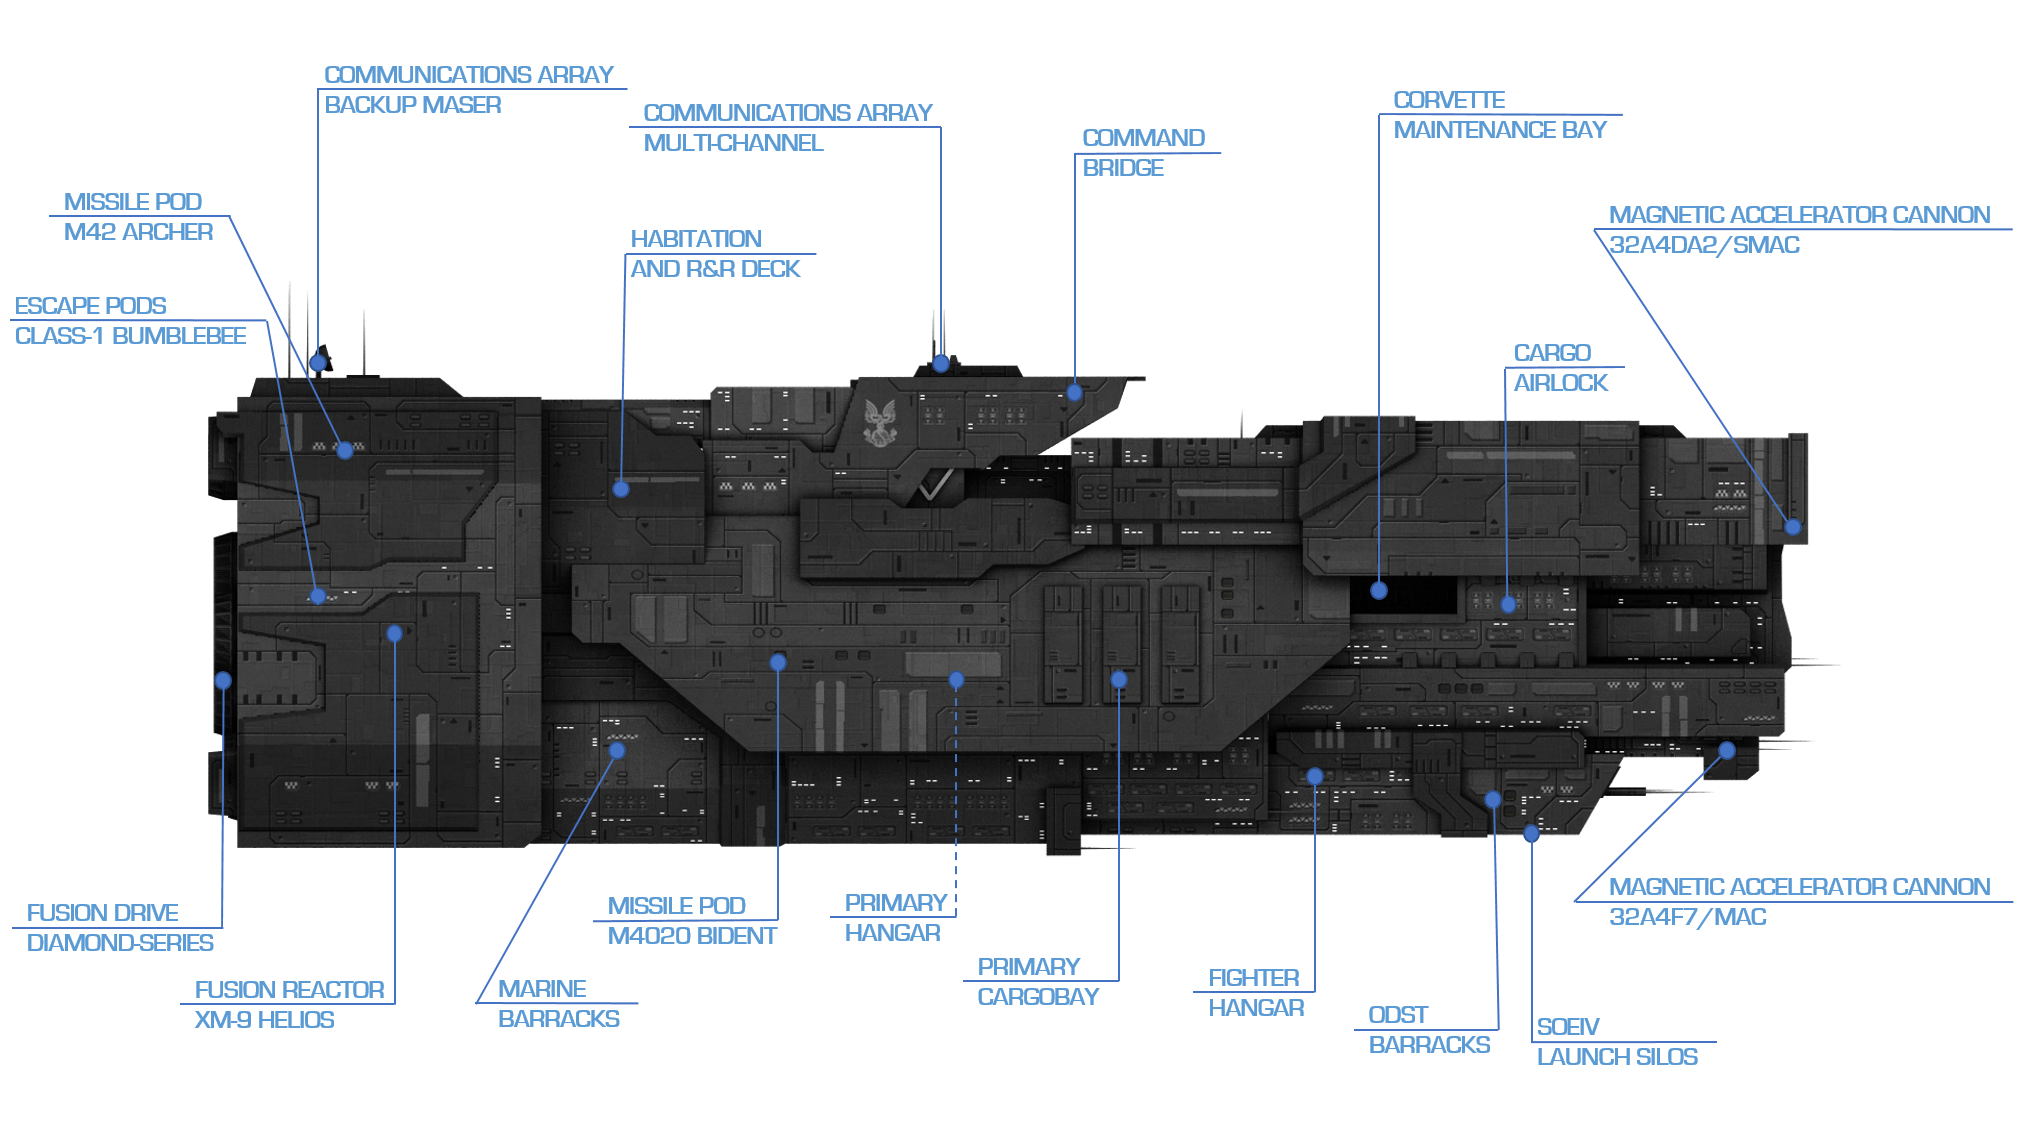 Thermopylae-class supercarrier